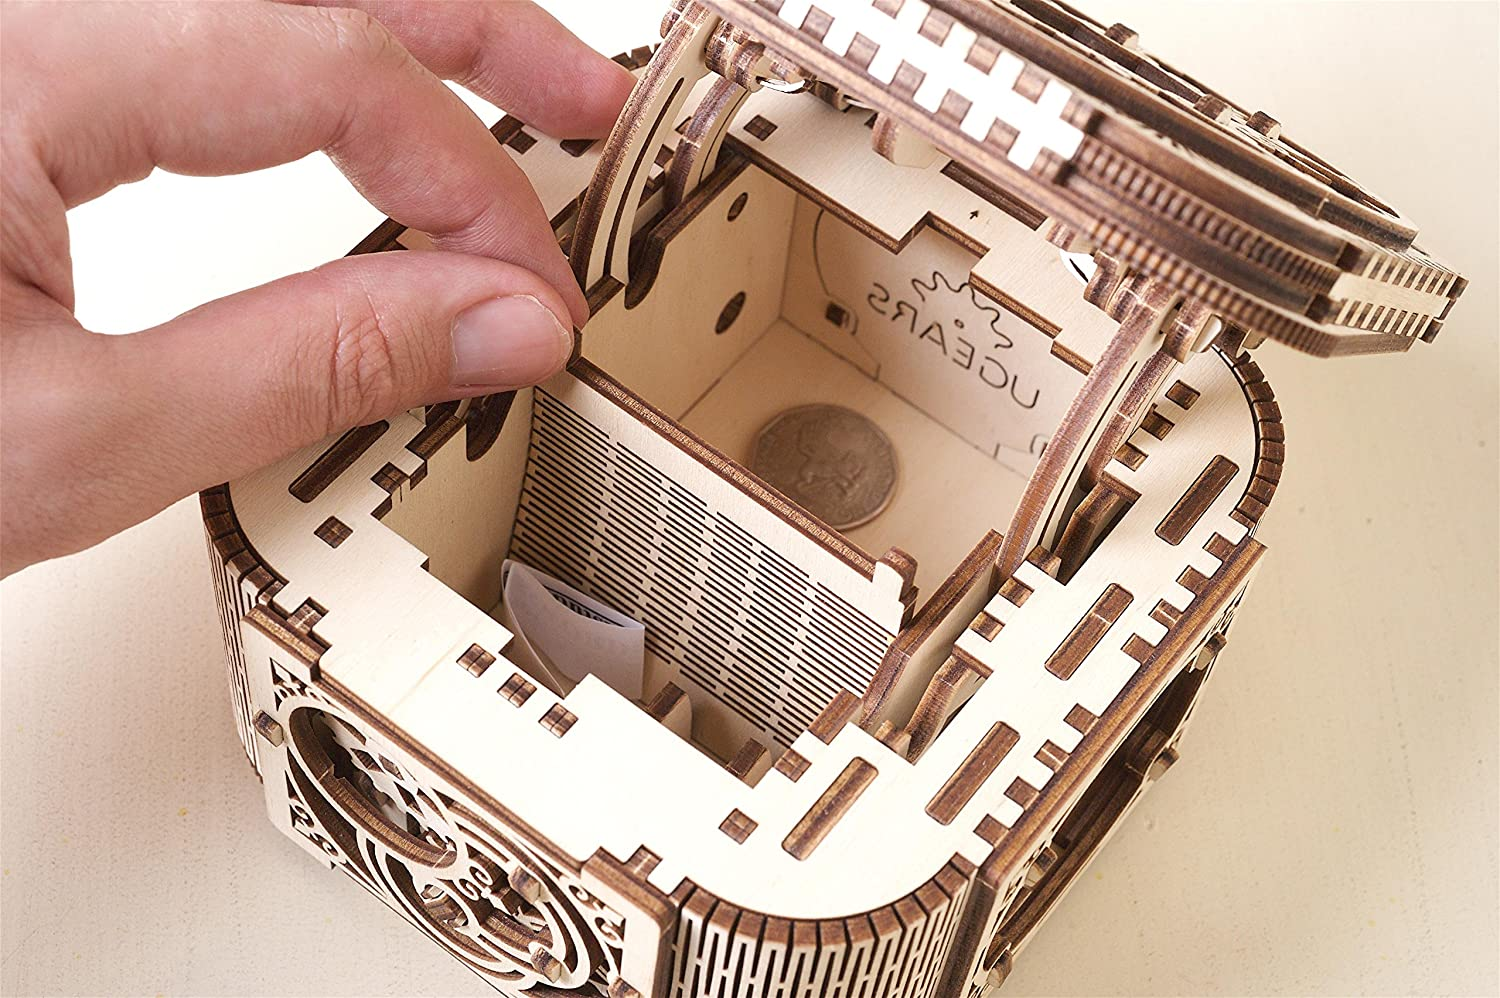 3d Puzzle For Adults New Model UGEARS Treasure Box Wooden 3D Mechanical Puzzle Brain Teaser Self Assemble Engineering Toys